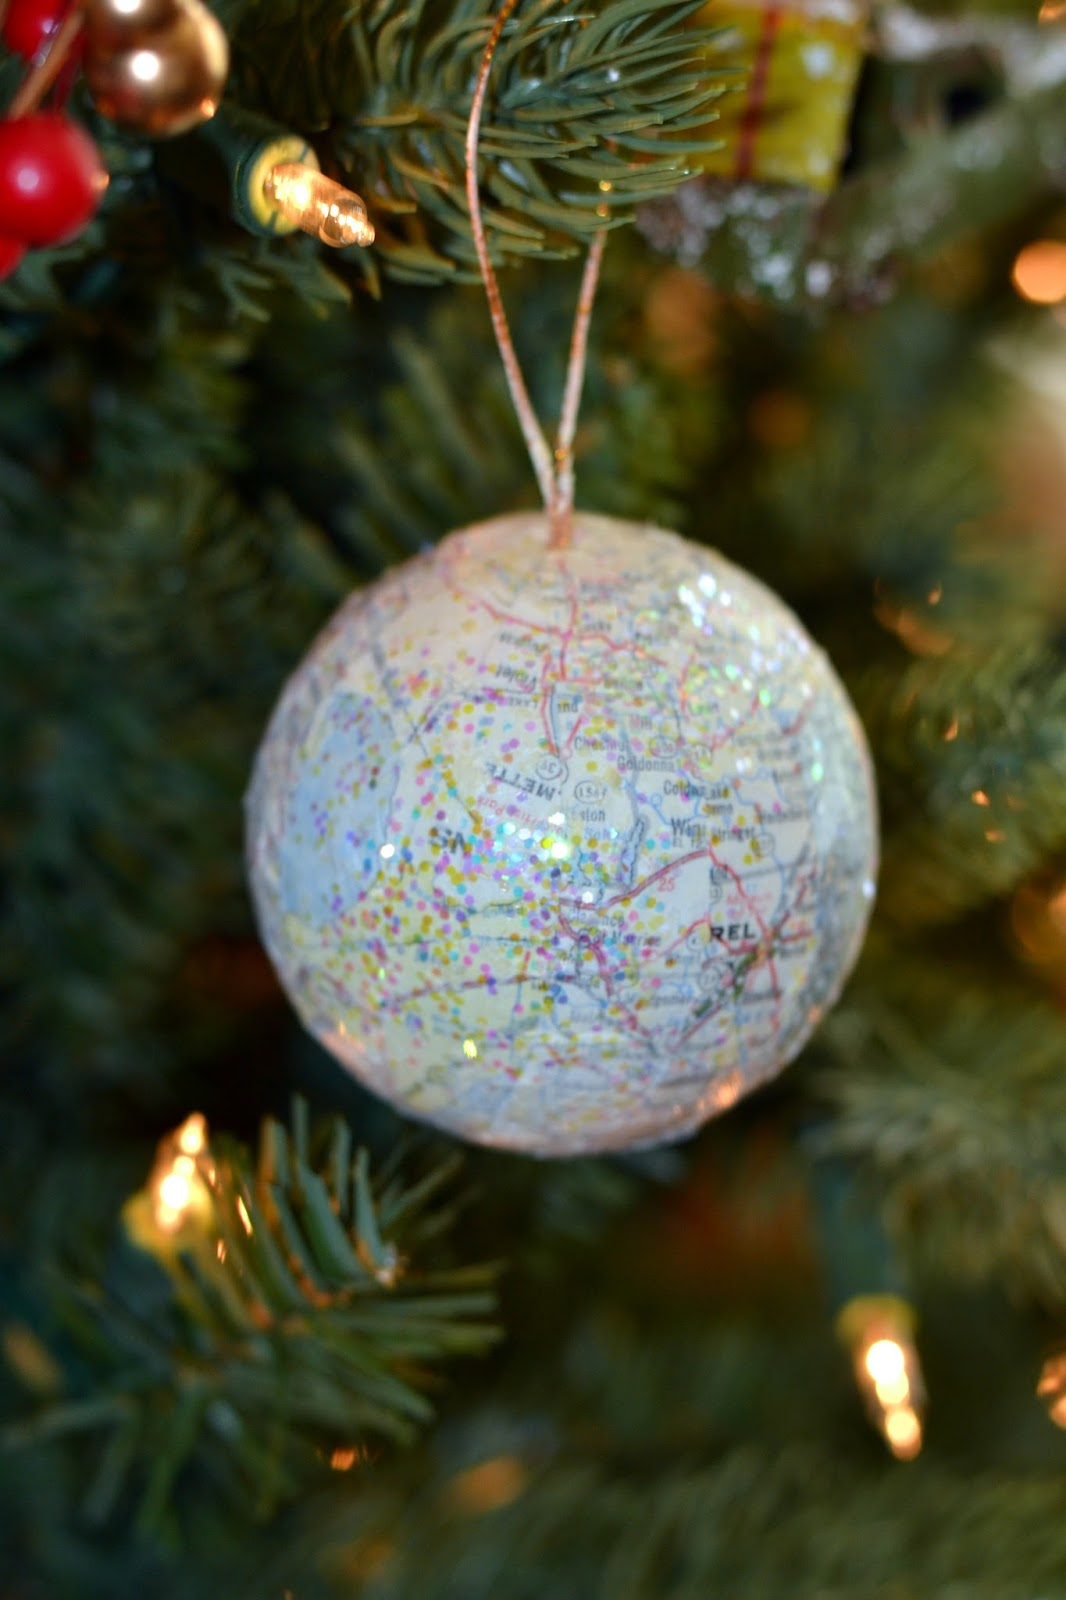 World globe christmas ornaments - I Love How You Can Personalize These Ornaments You Can Include The Map Of Your Hometown The Place You And Your Husband Met Or Just Someplace That Has